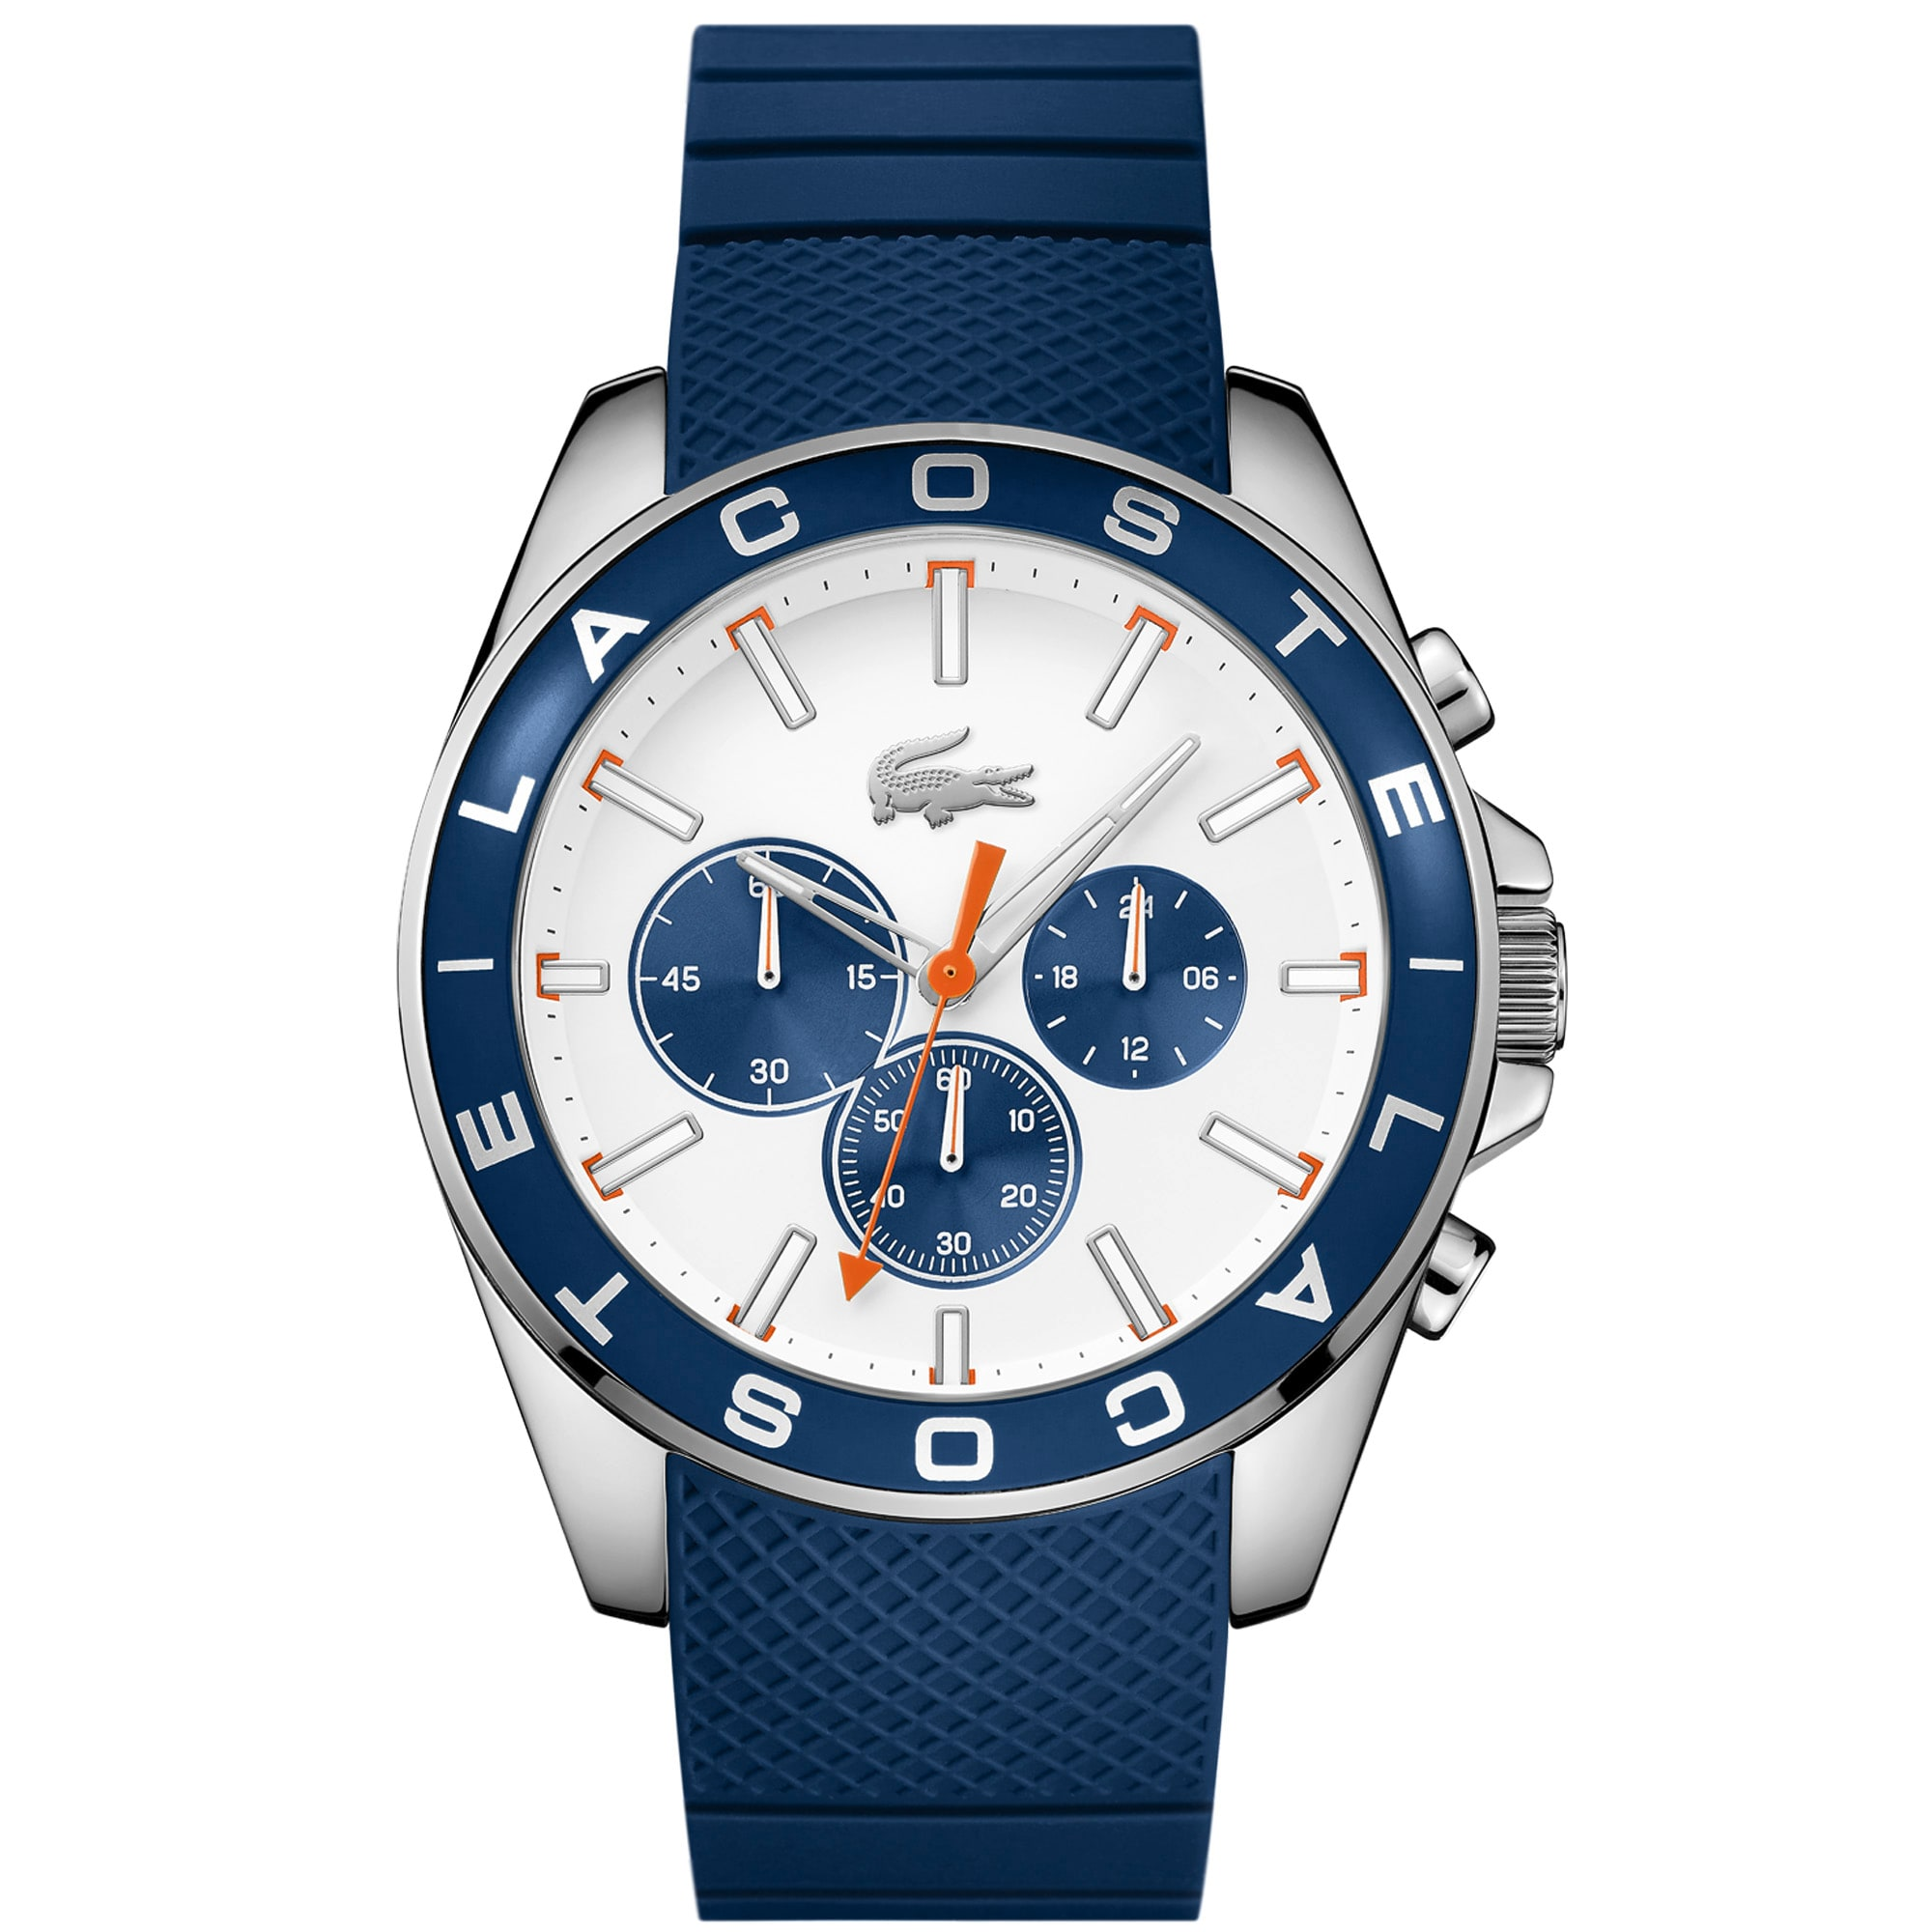 Men's Blue Westport Chronograph Watch